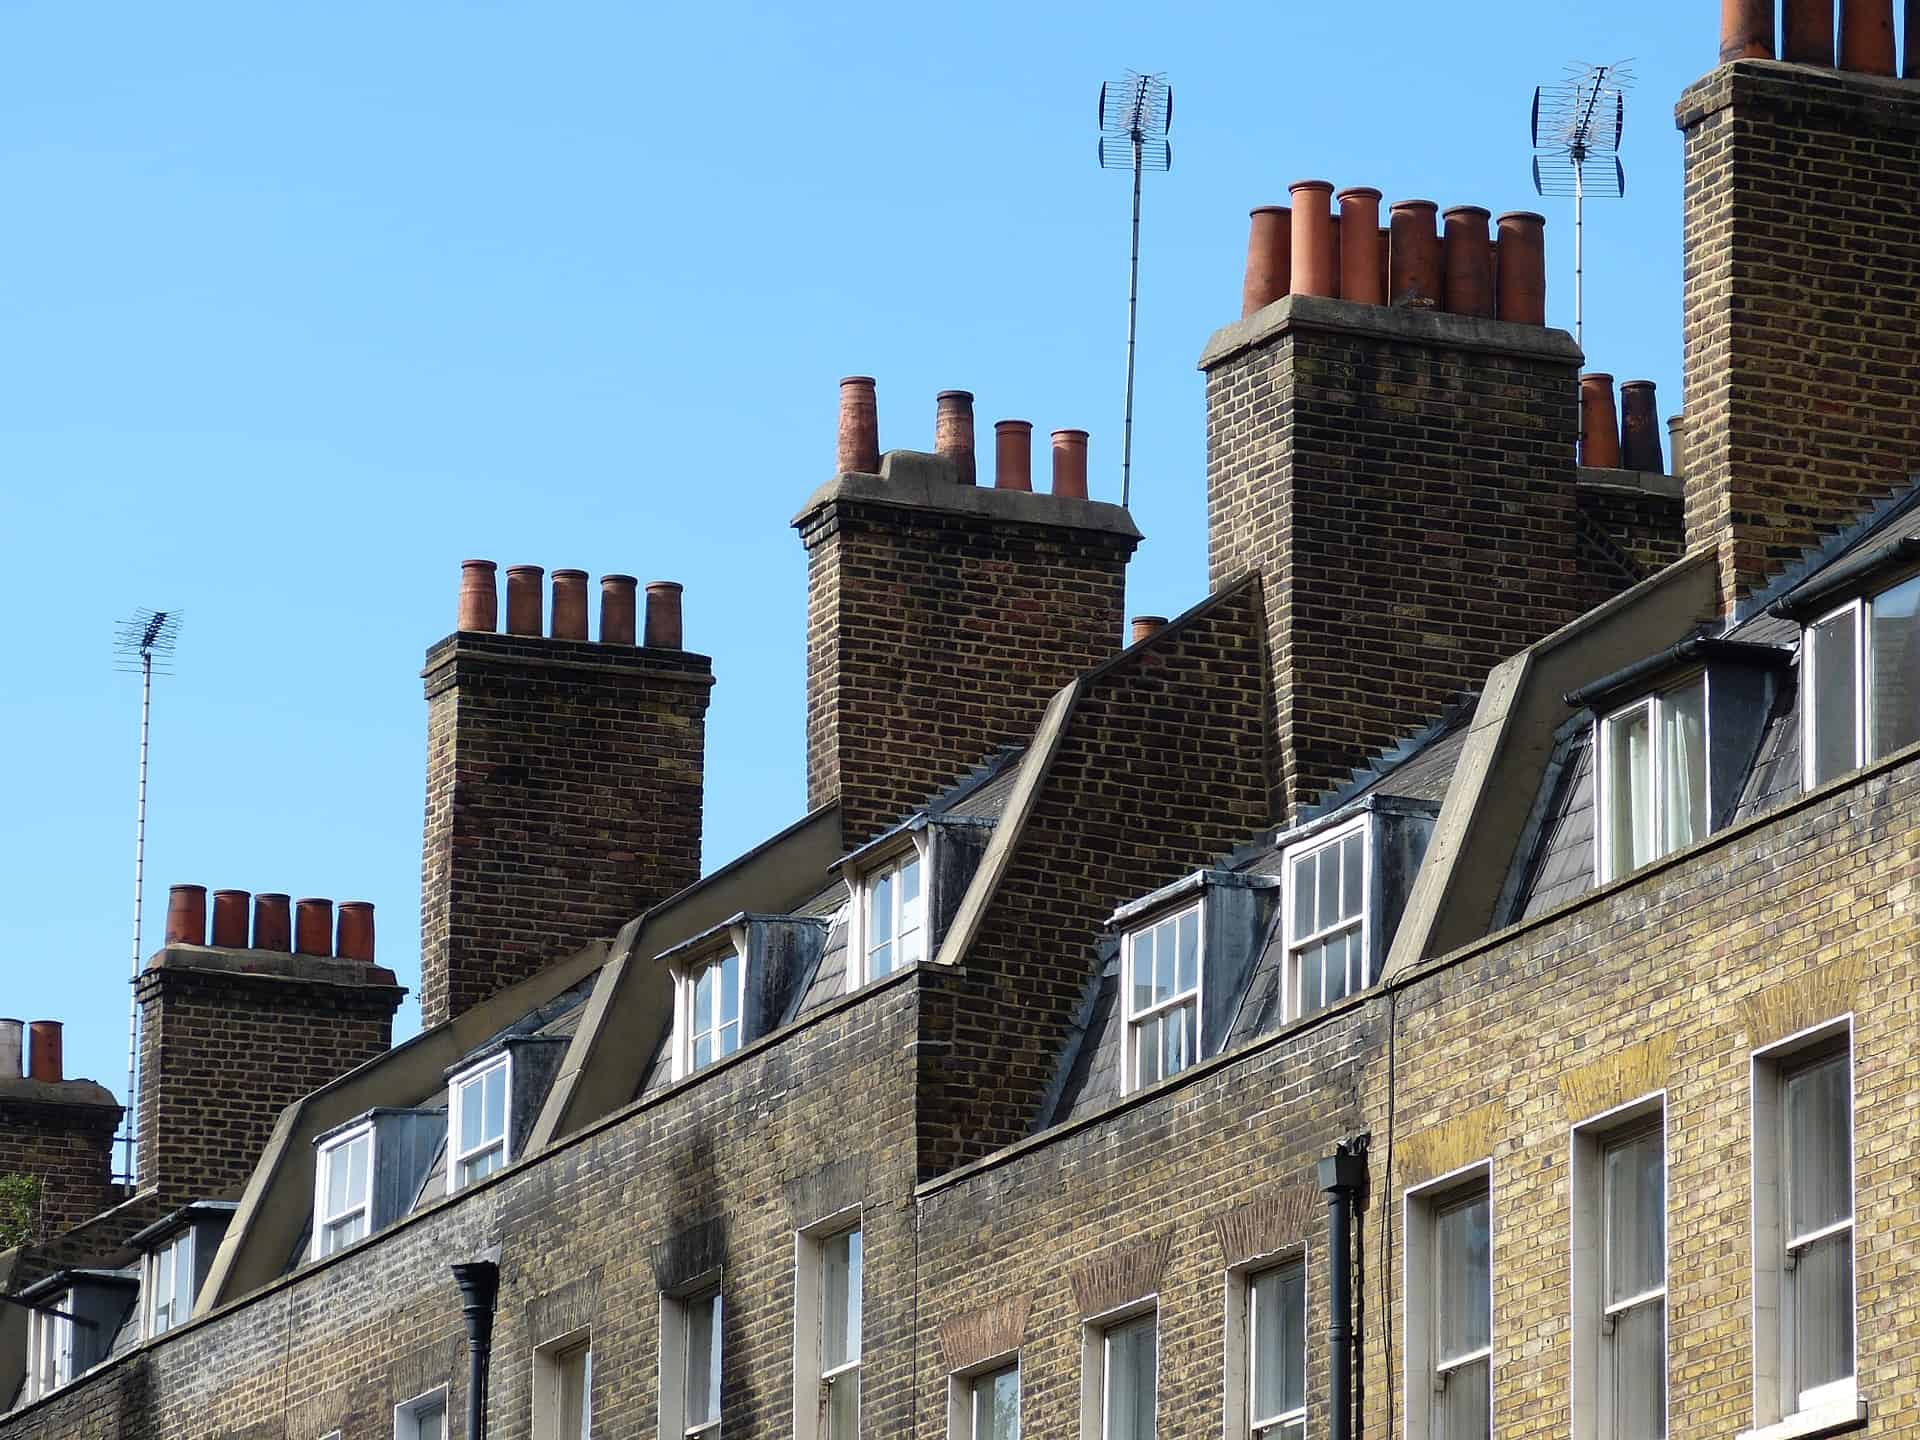 Chimneys on a row of terraced housing